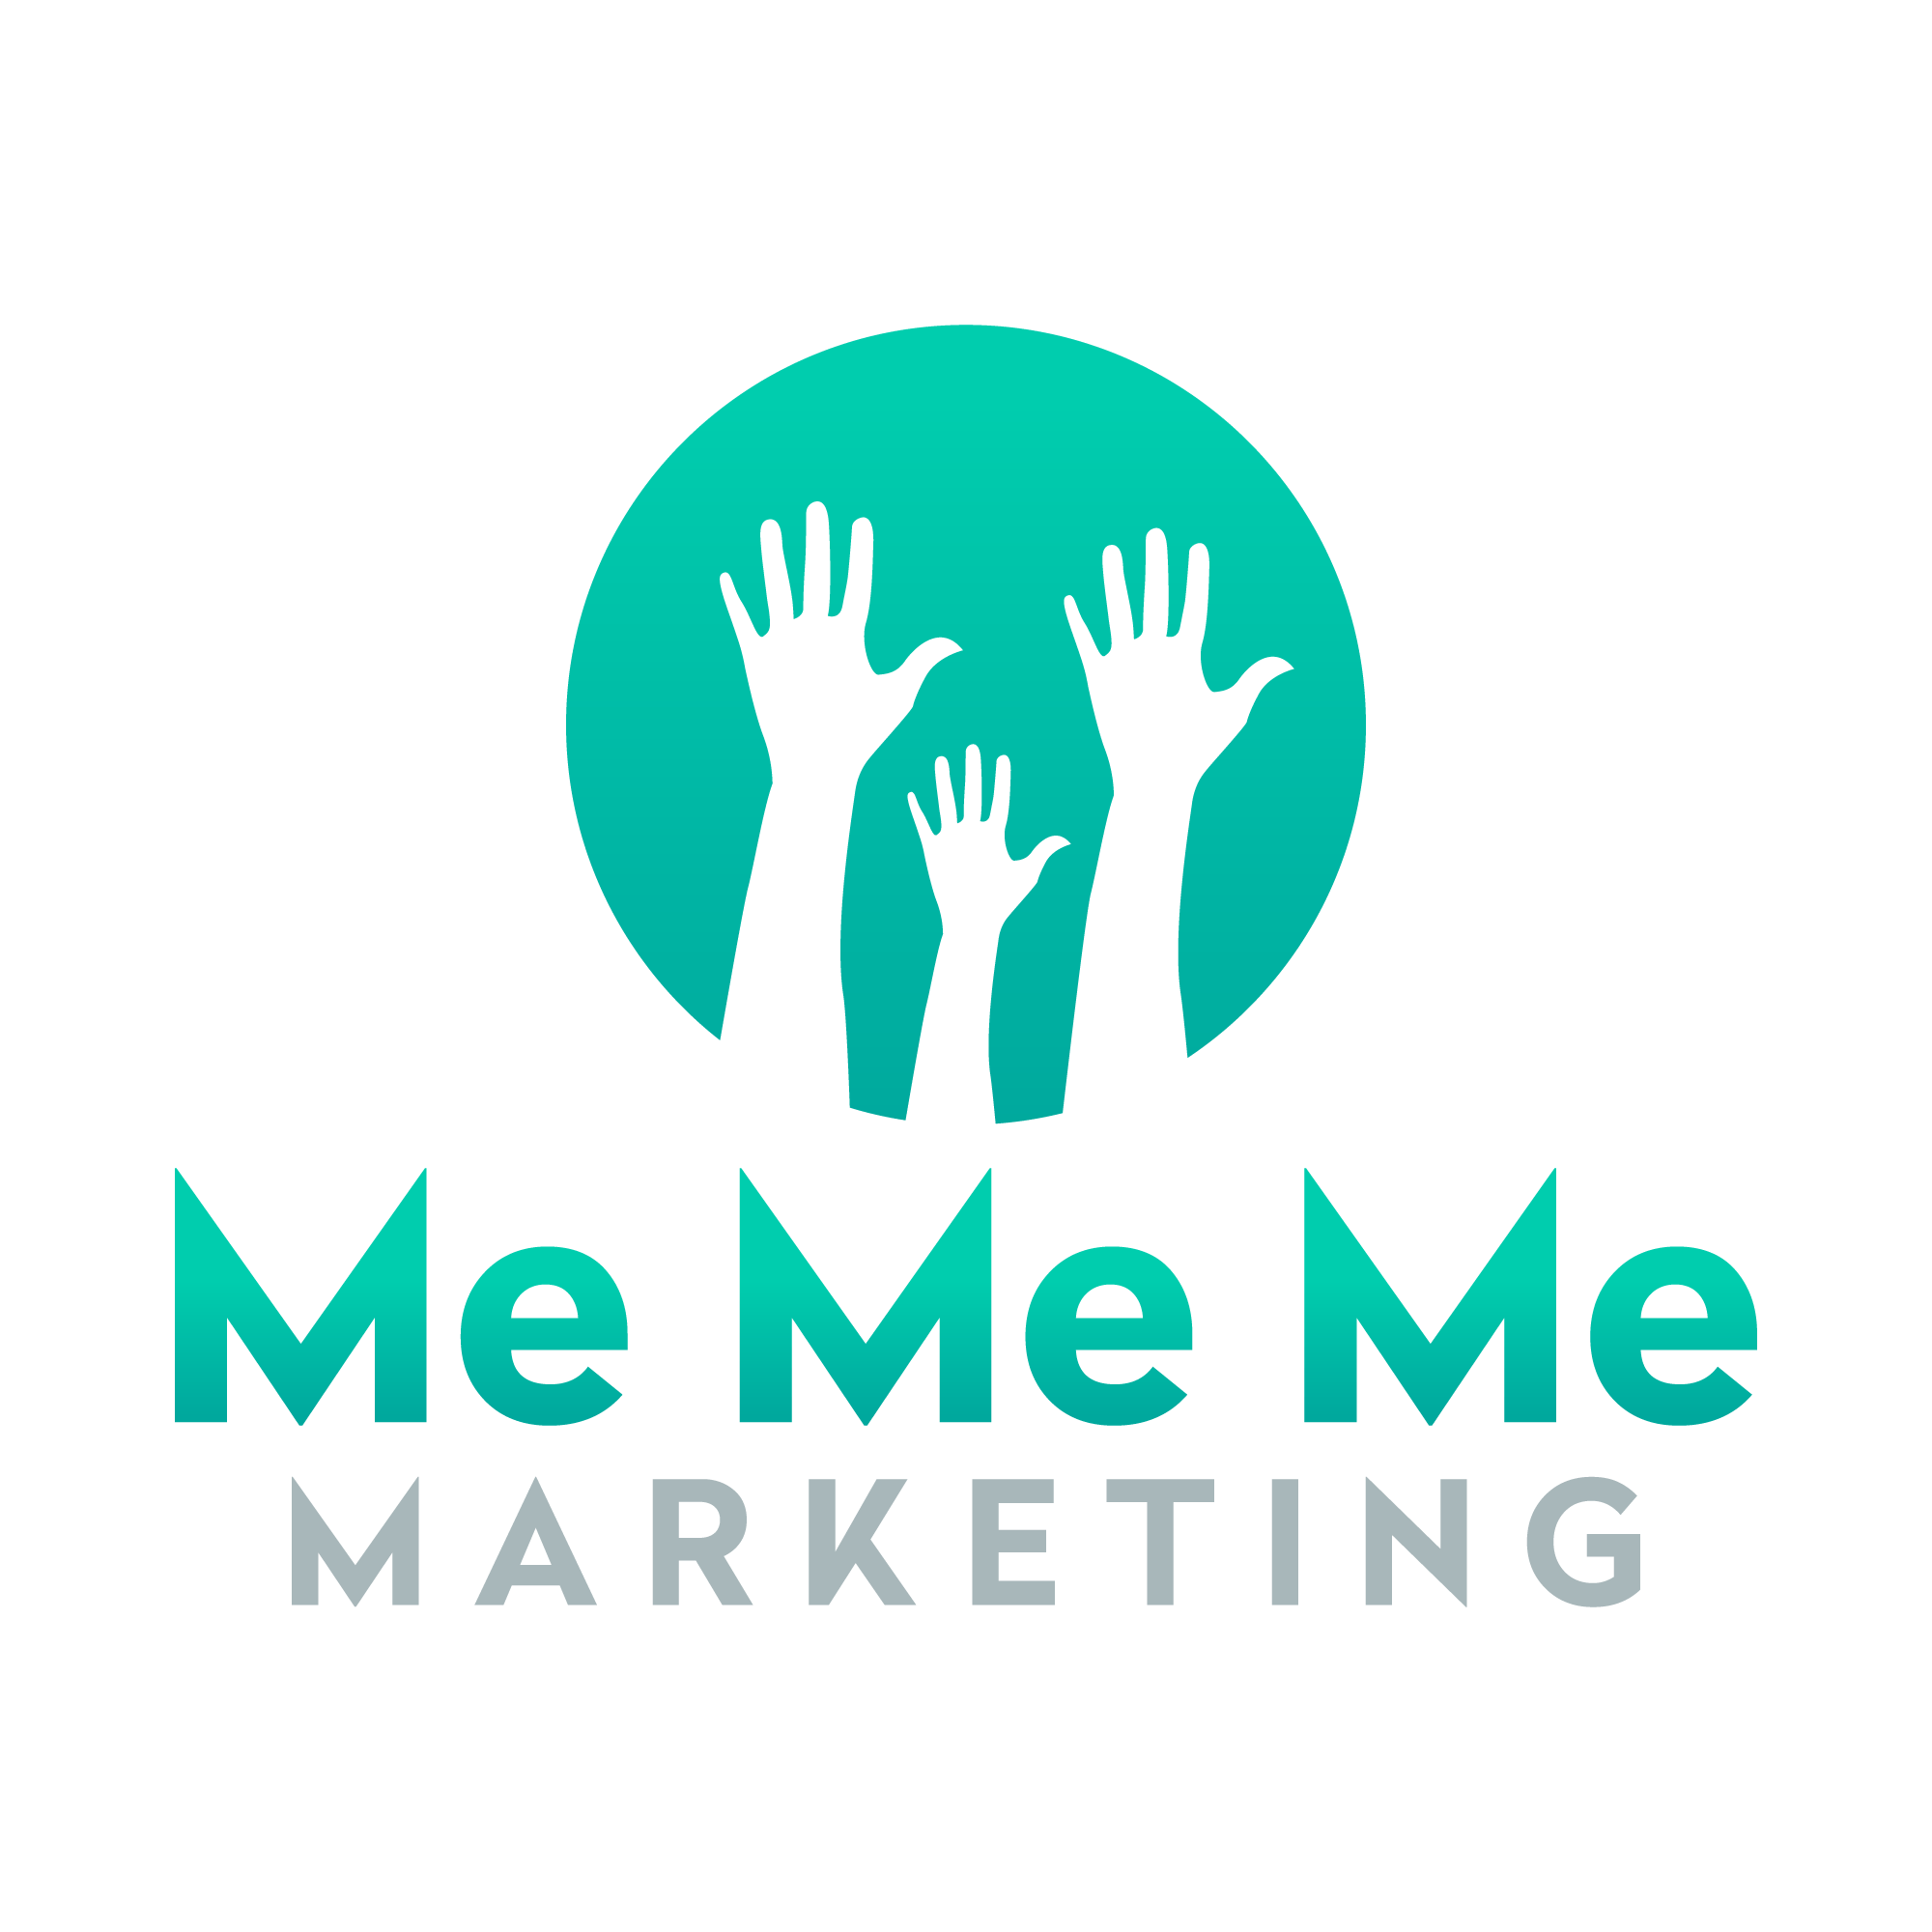 Me Me Me Marketing logo